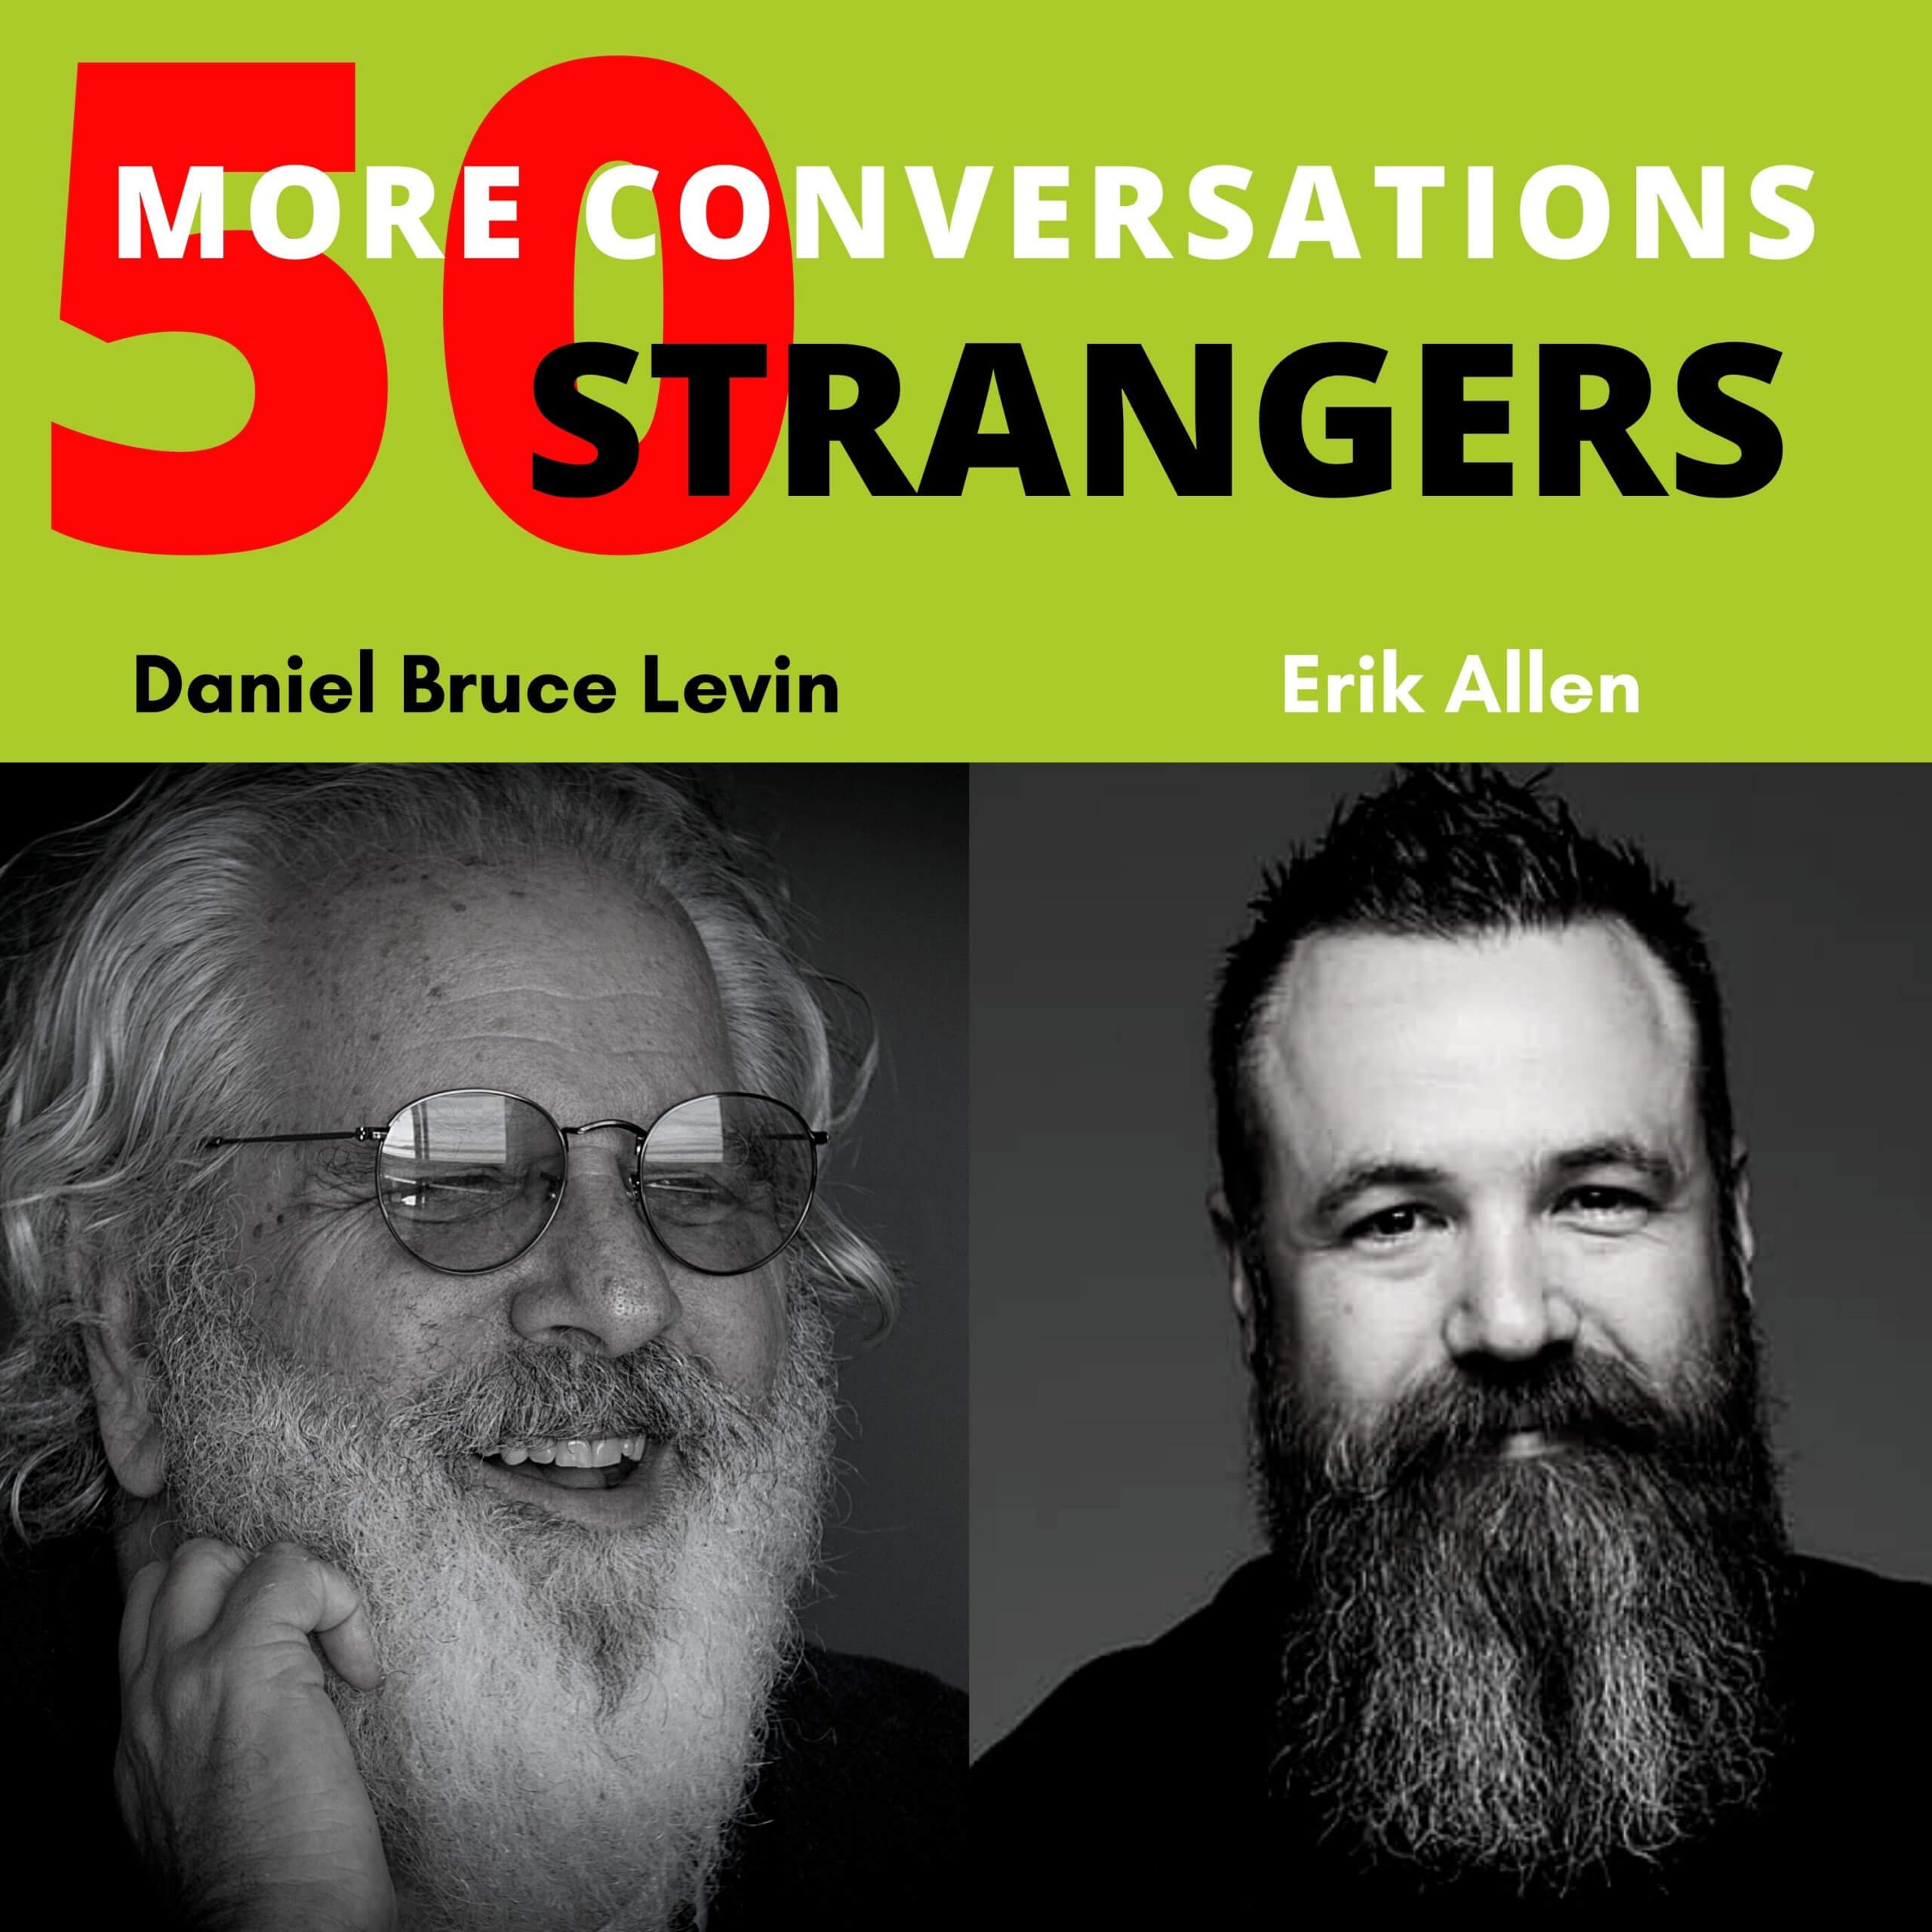 50 More Conversations with 50 More Strangers with Erik Allen